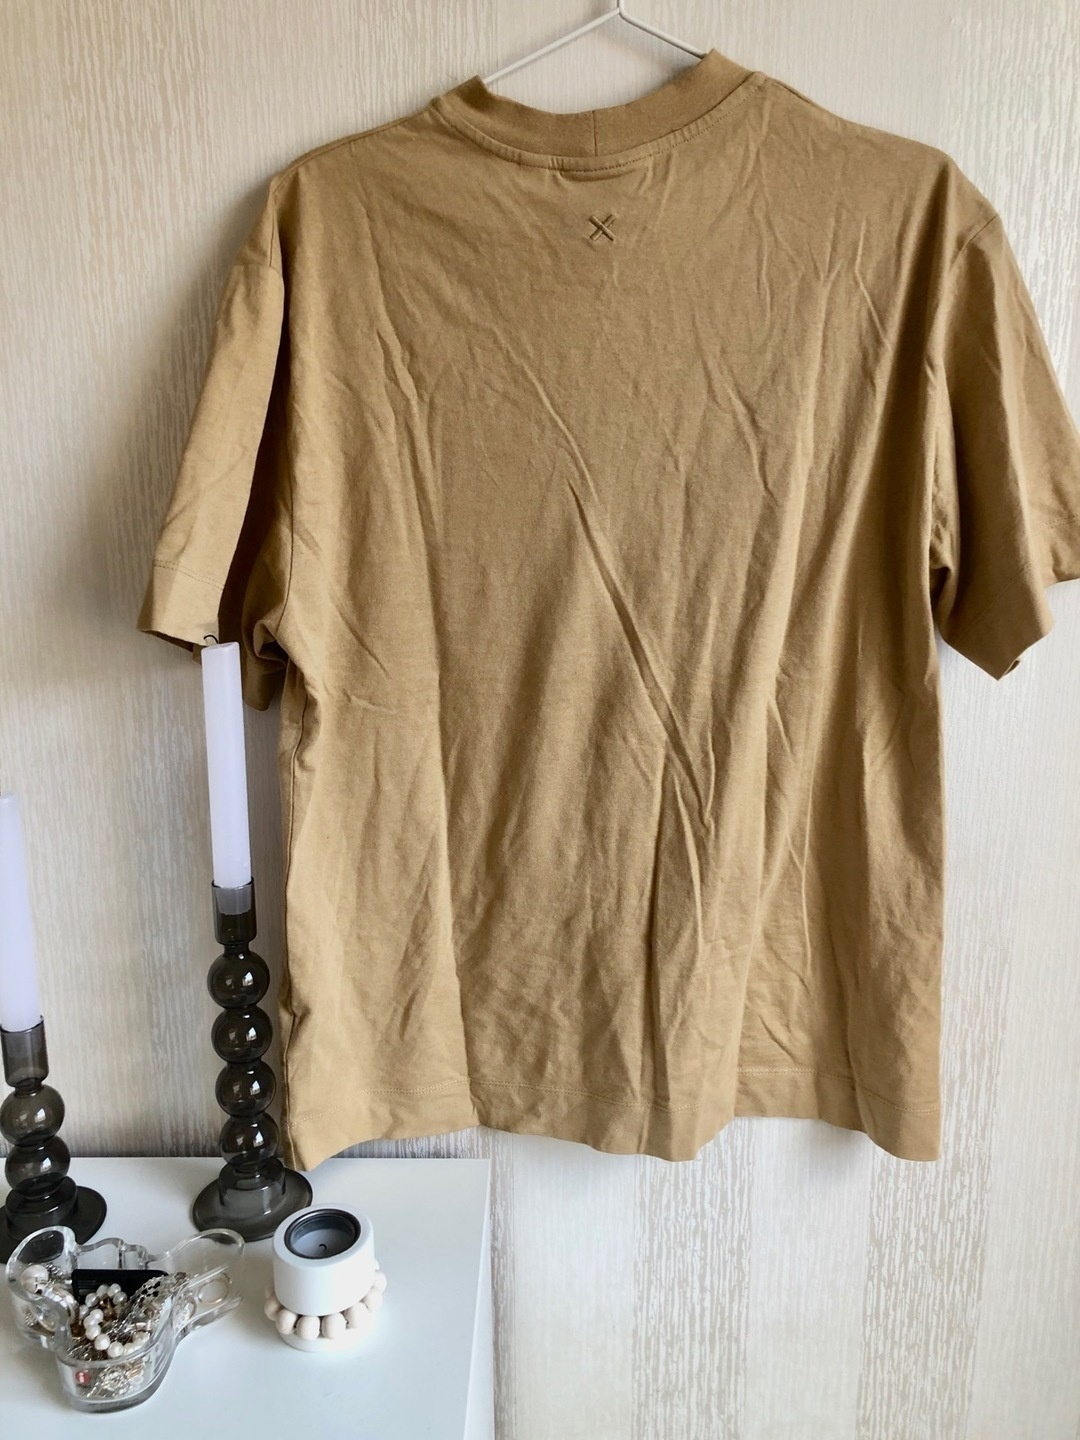 Women's tops & t-shirts - COLLUSION photo 3